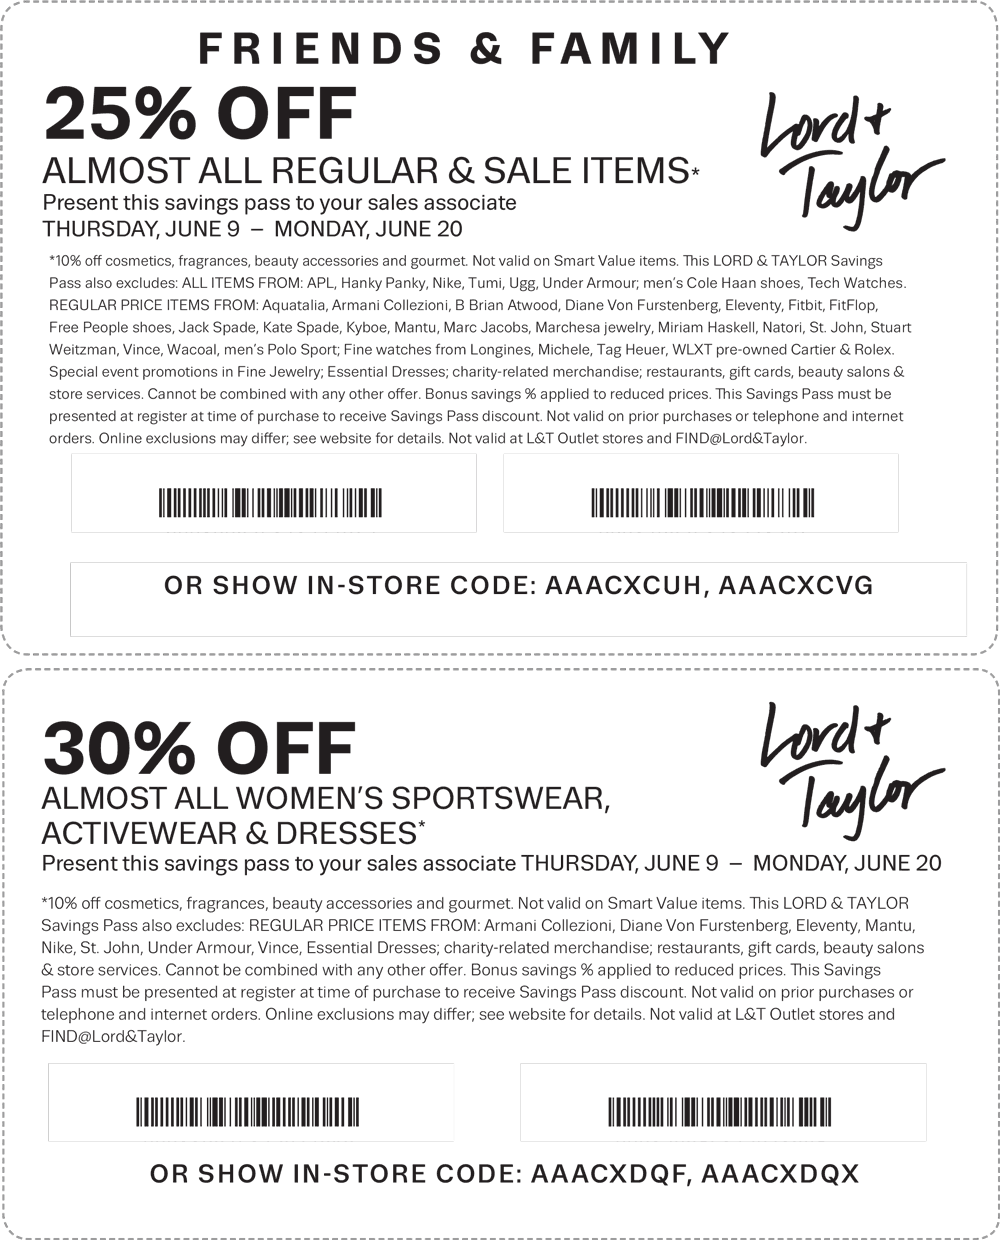 Lord & Taylor Coupon May 2017 25% off & more at Lord & Taylor, or online via promo code FRIENDS